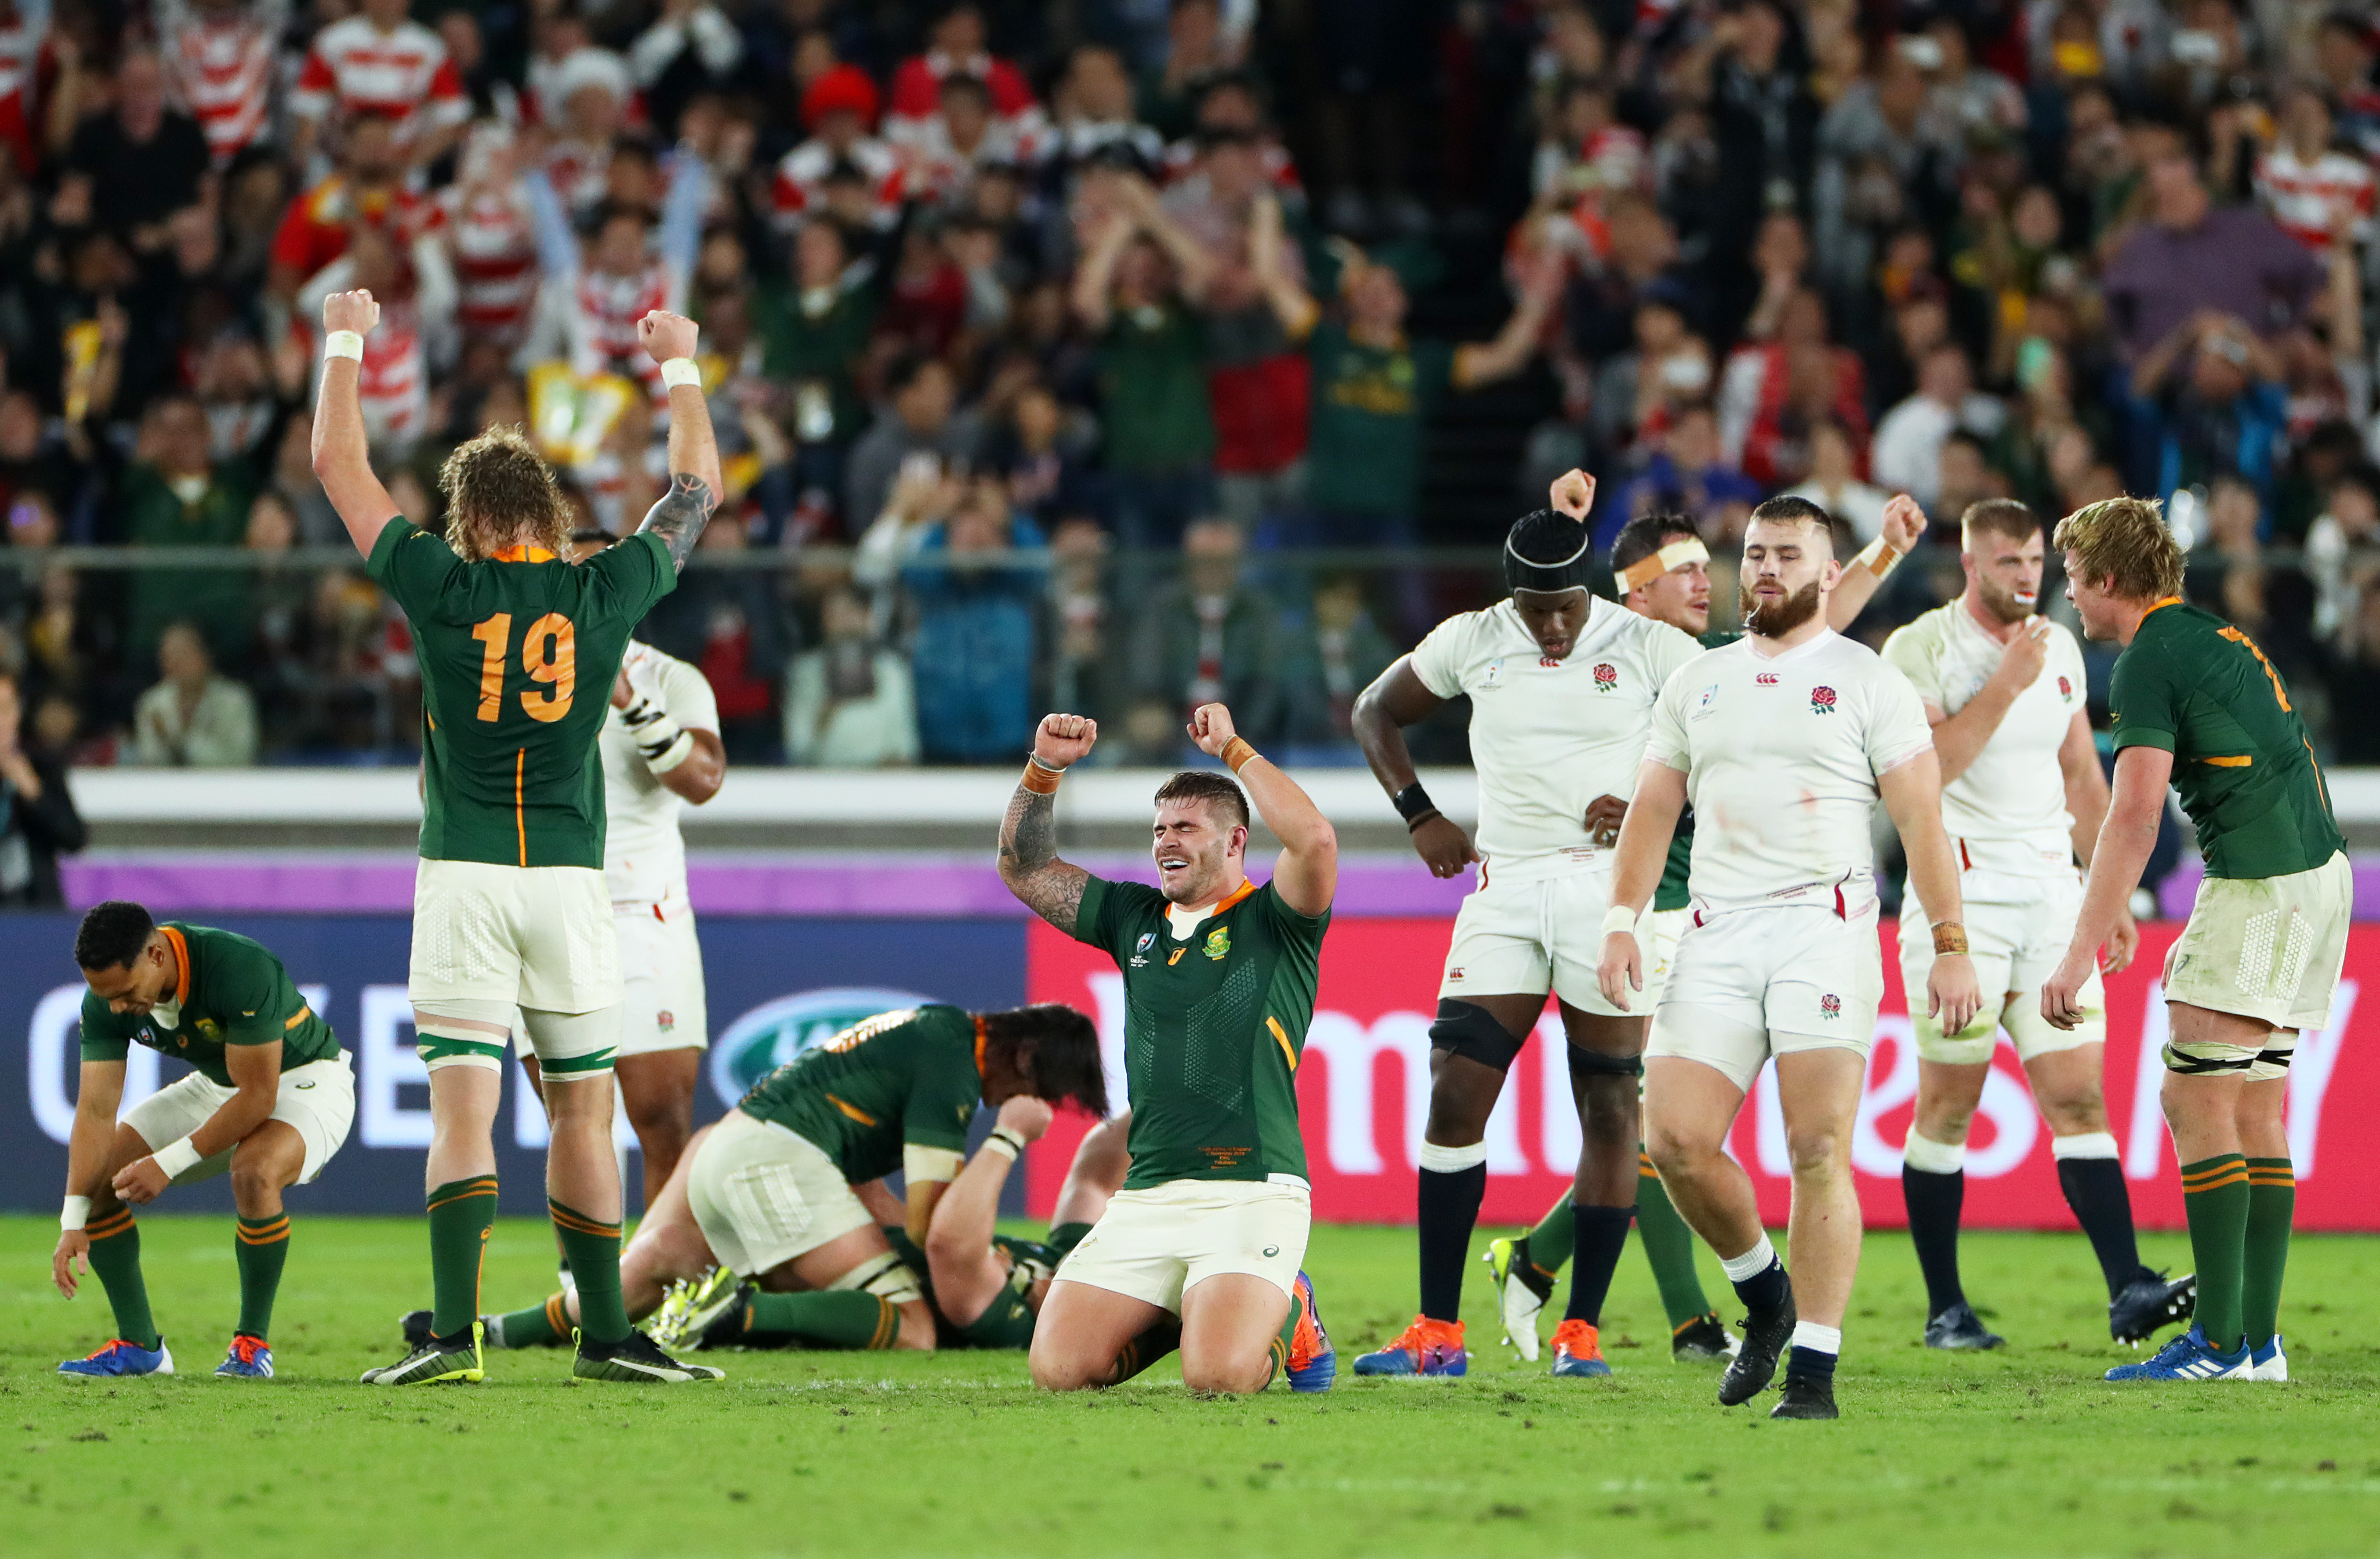 Rugby World Cup 2019 South Africa Make History By Doing The Double Rugby News Stadium Astro